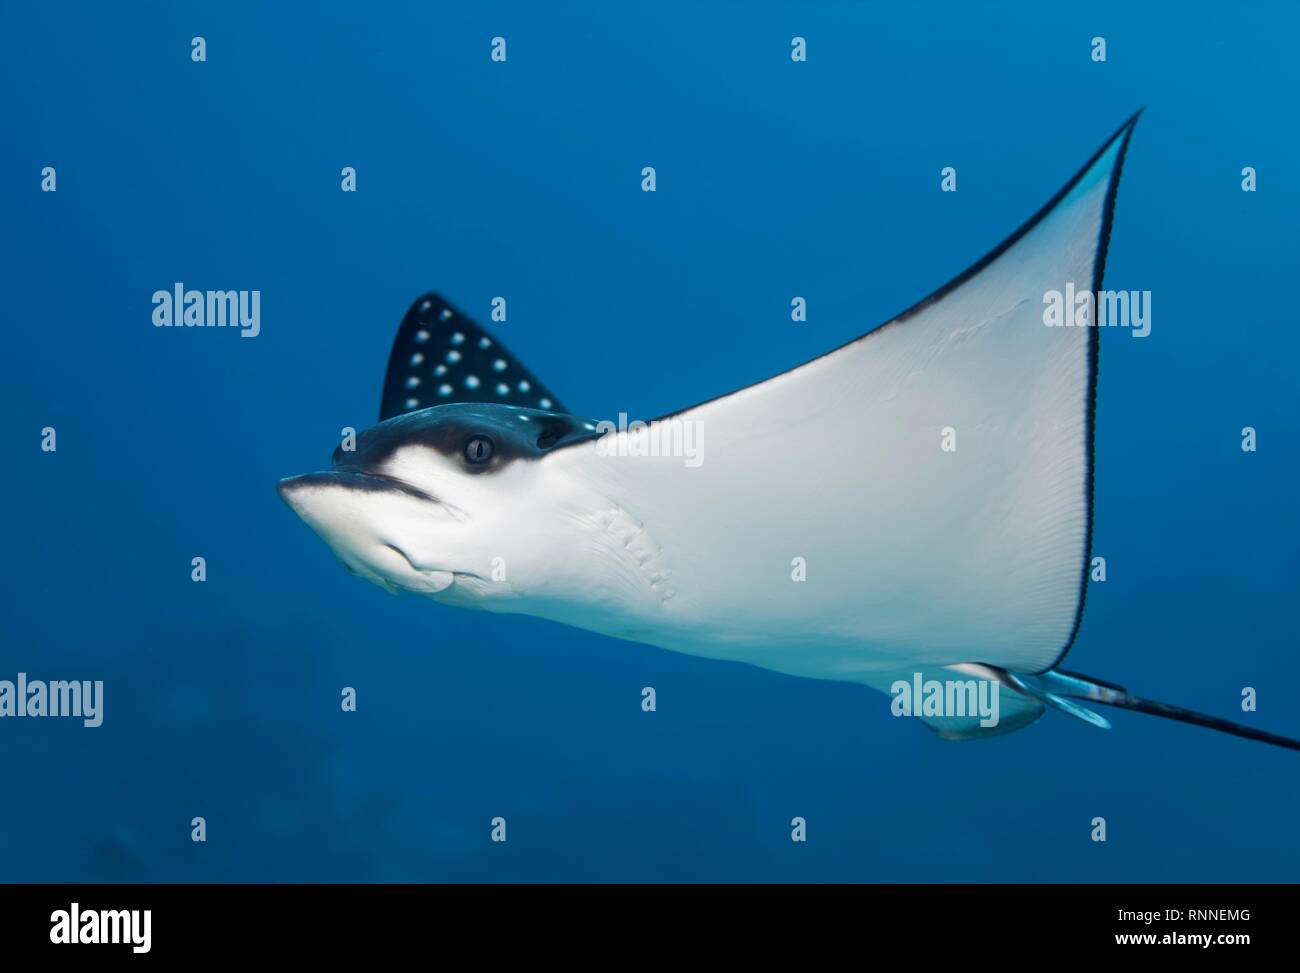 Spotted eagle ray (Aetobatus narinari), swimming in the open